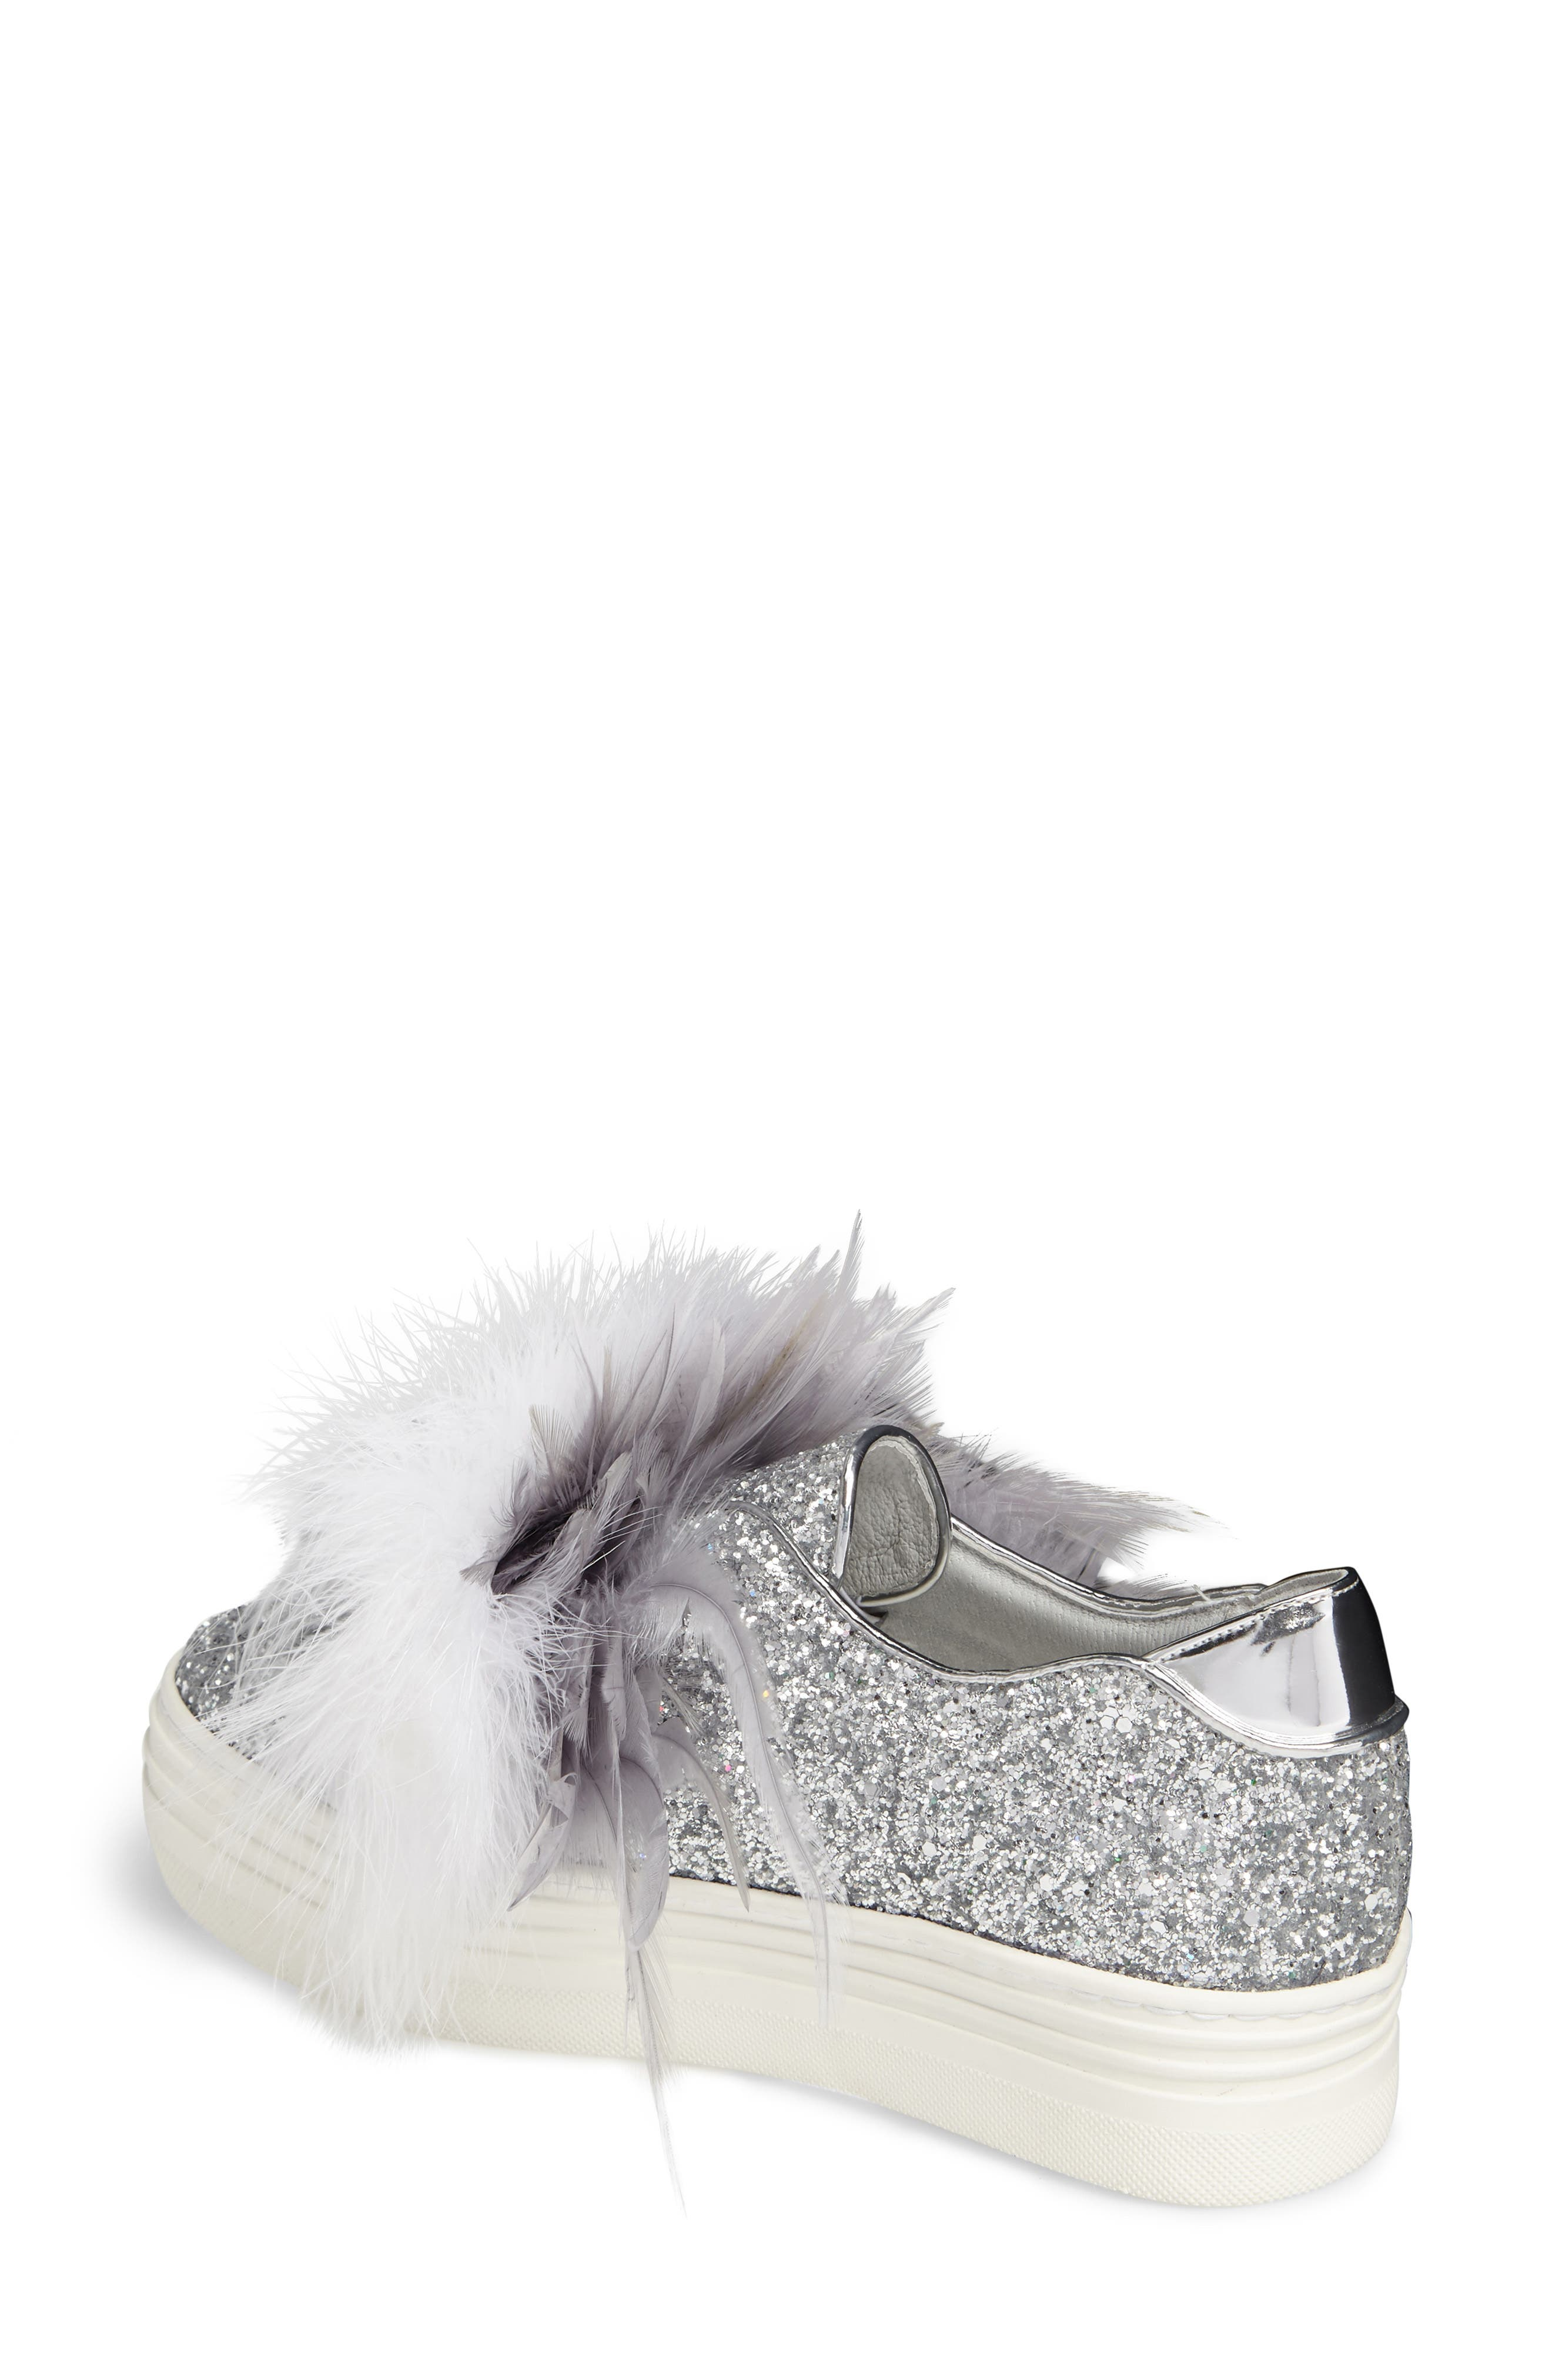 Kate Feathered Slip-On Sneaker,                             Alternate thumbnail 2, color,                             Grey Feather Silver Glitter